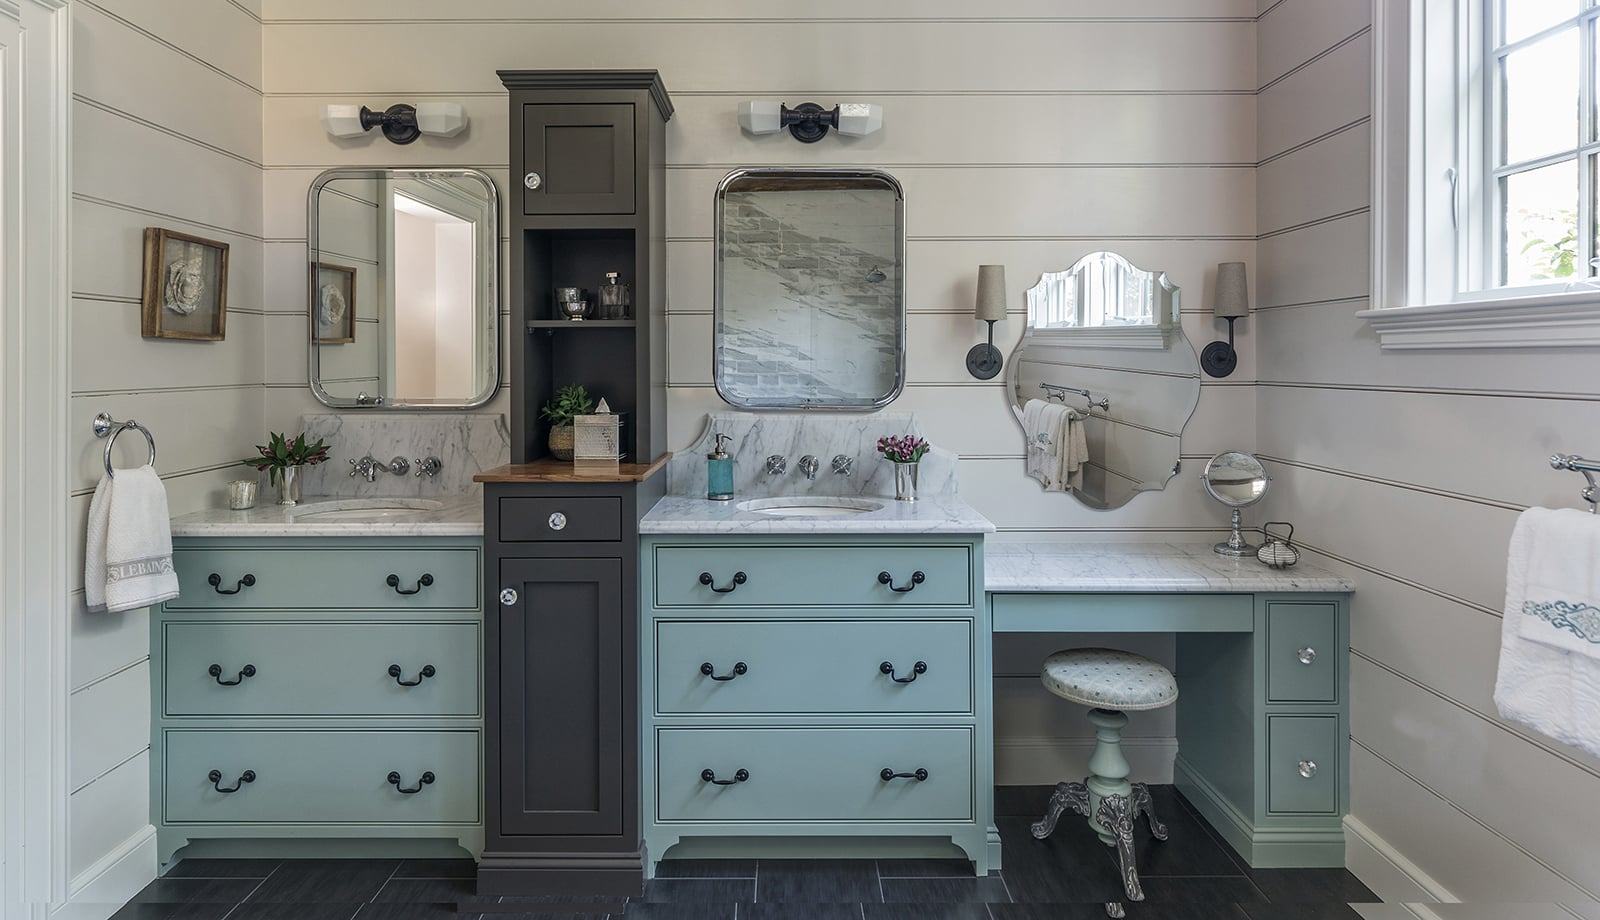 Farmhouse Flair Interiors Ipswich MA Bathroom